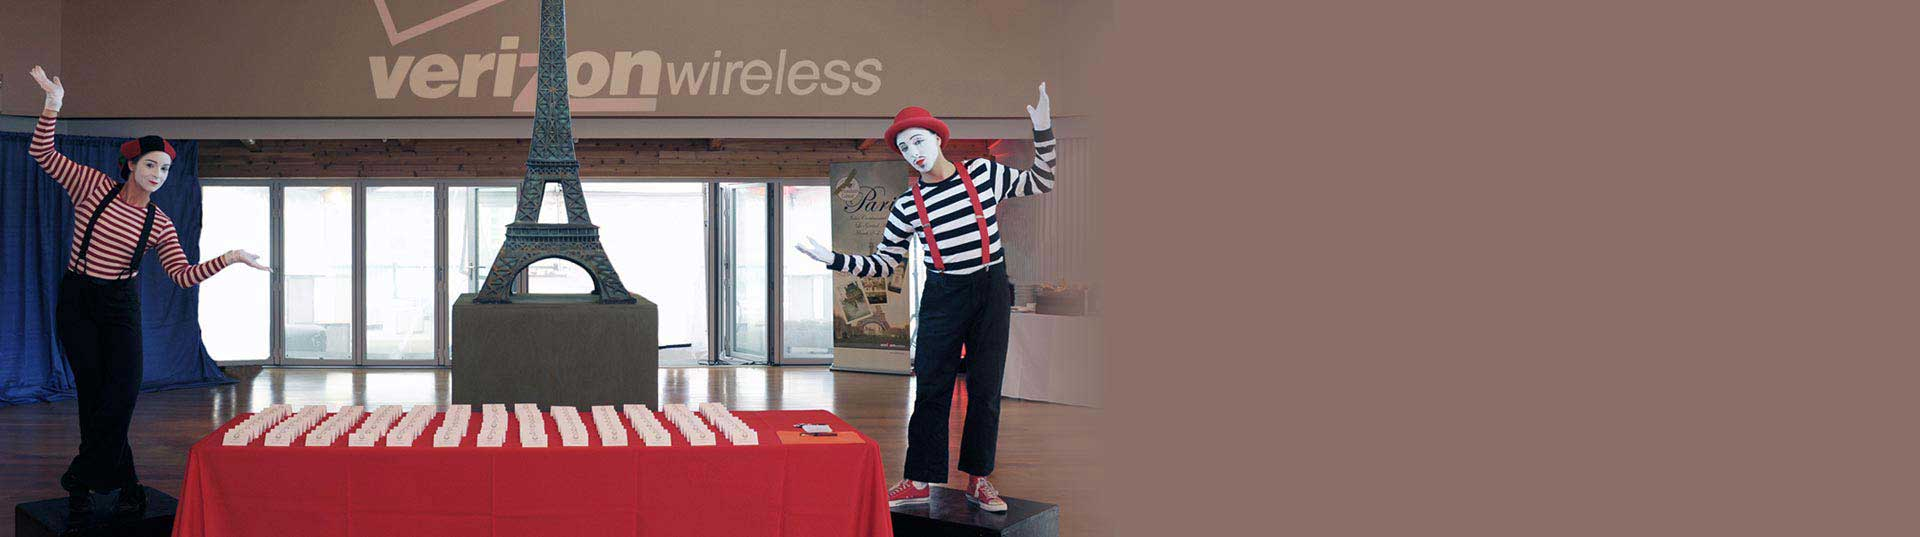 French Mime performers at Corporate Verizon event